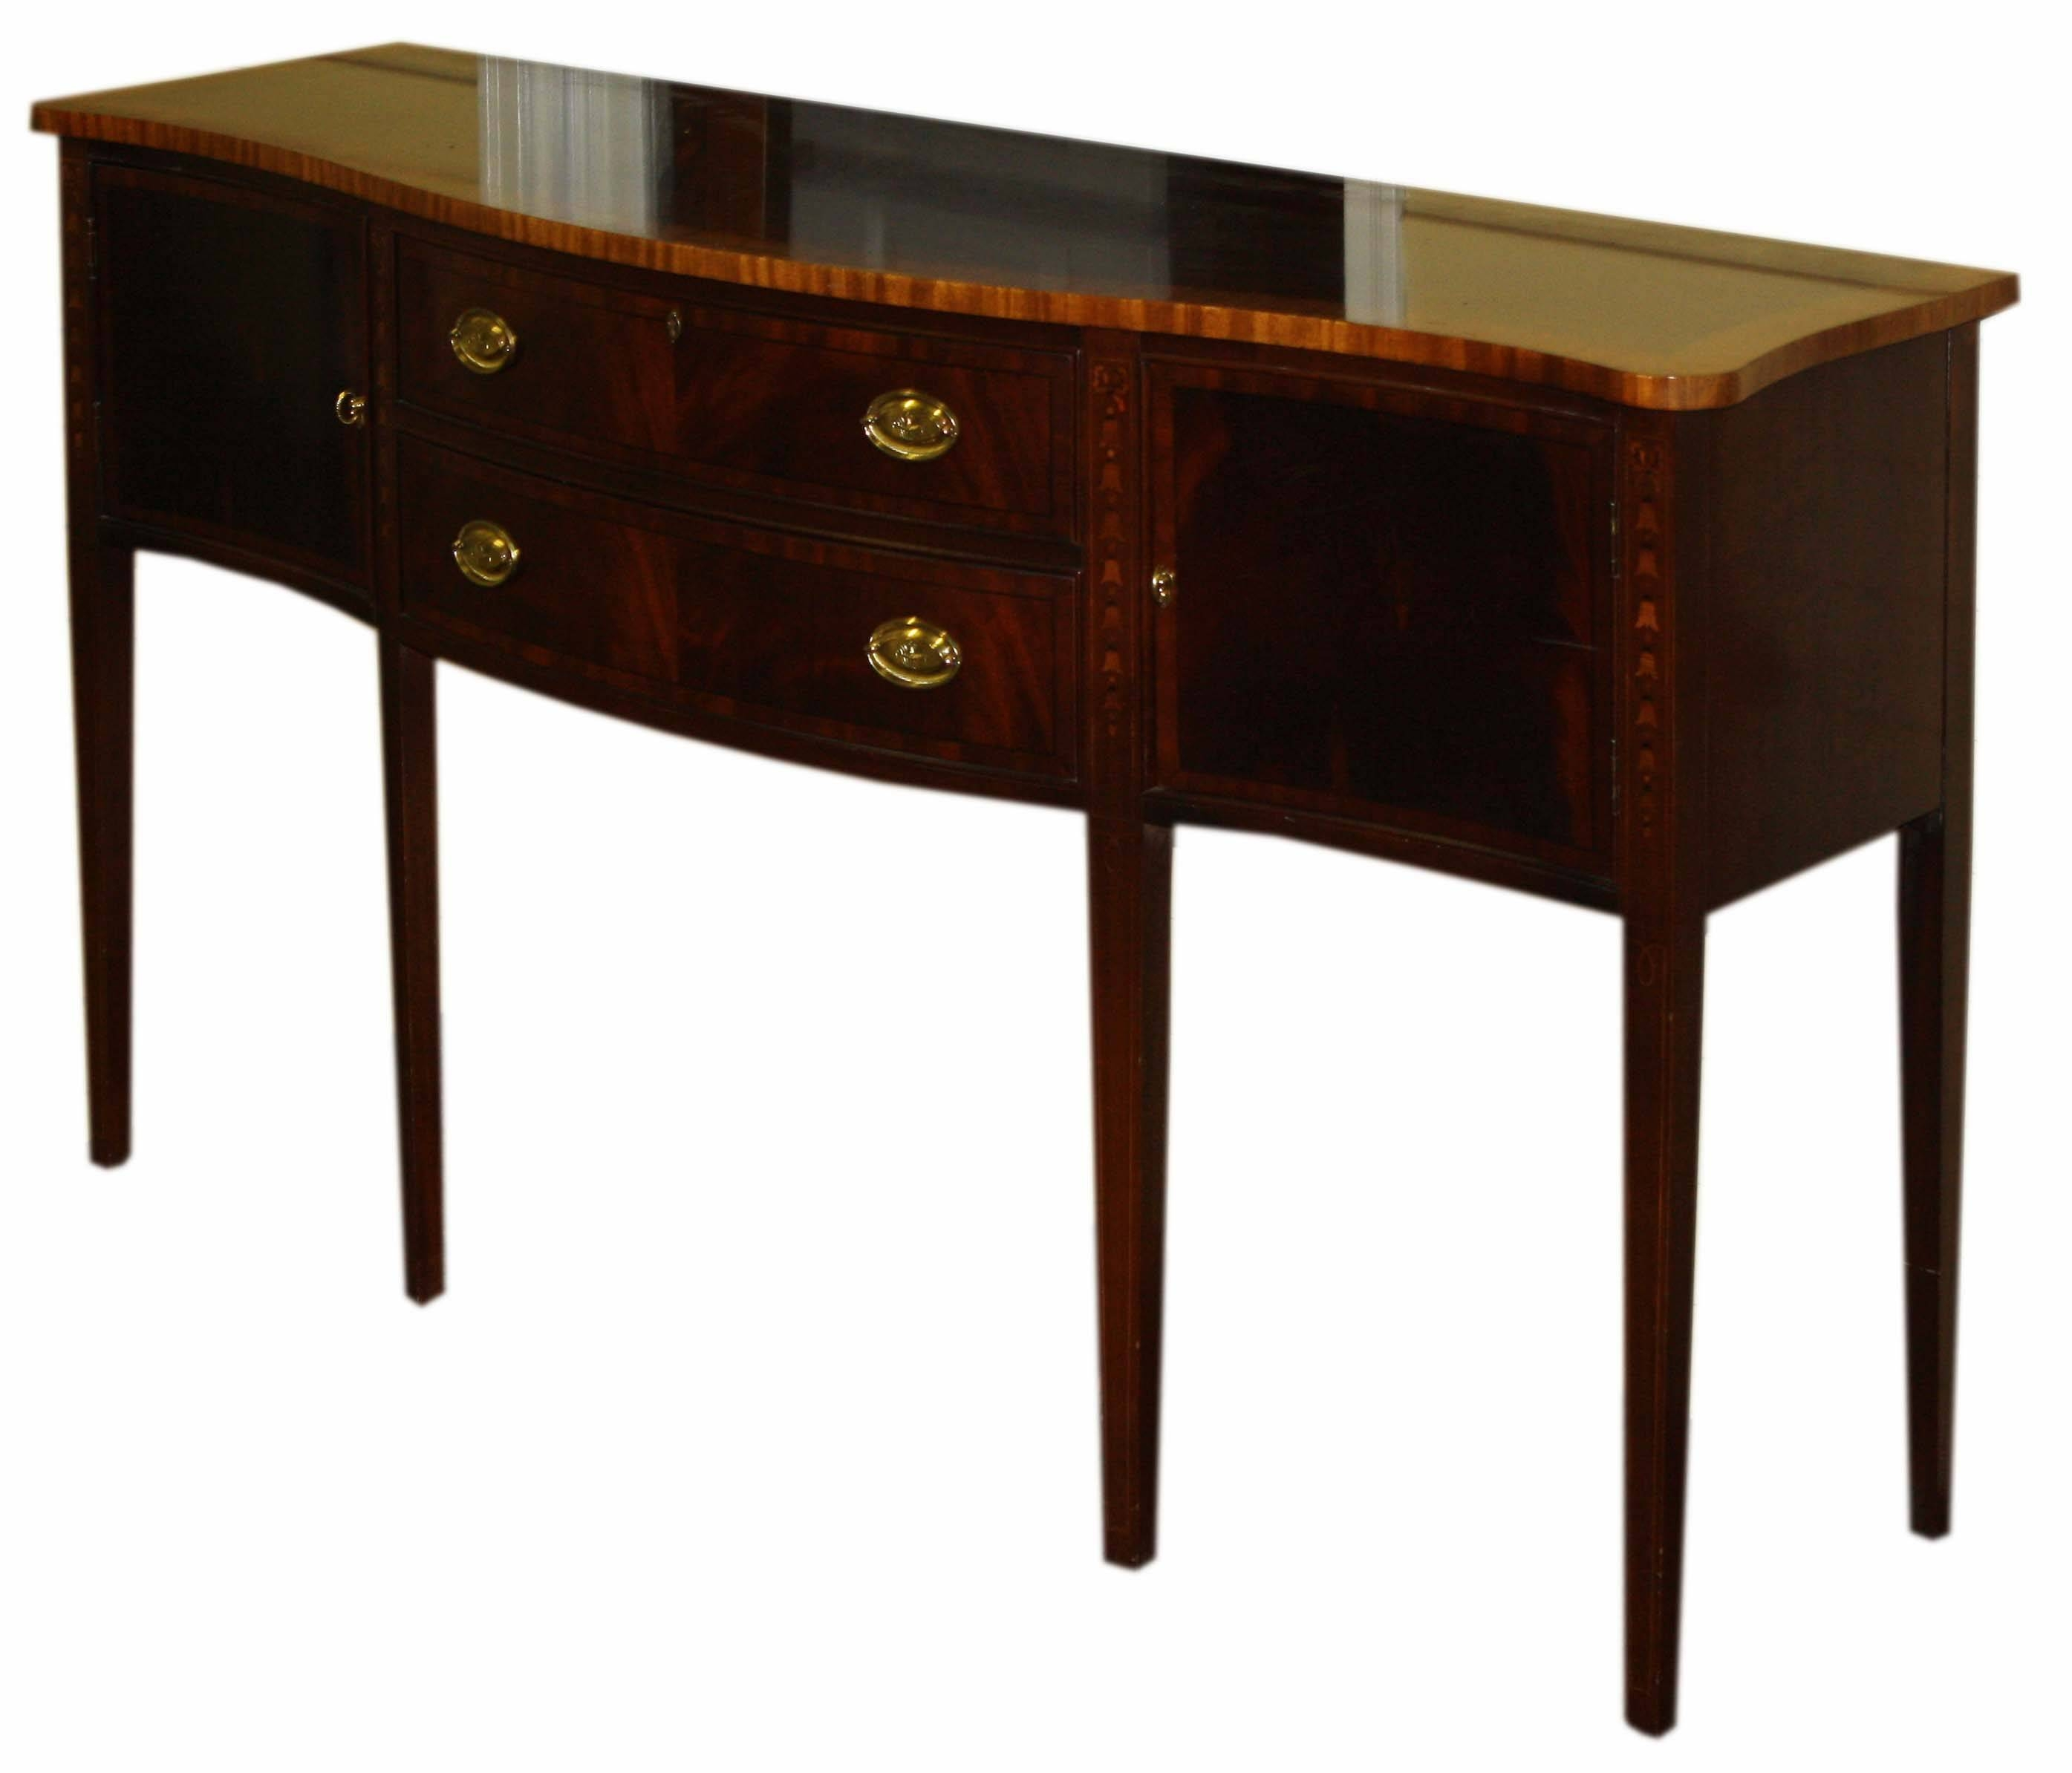 Ethan Allen Hepplewhite Mahogany Sideboard | Merrill's Auction For Most Recent Ethan Allen Sideboards (View 3 of 15)